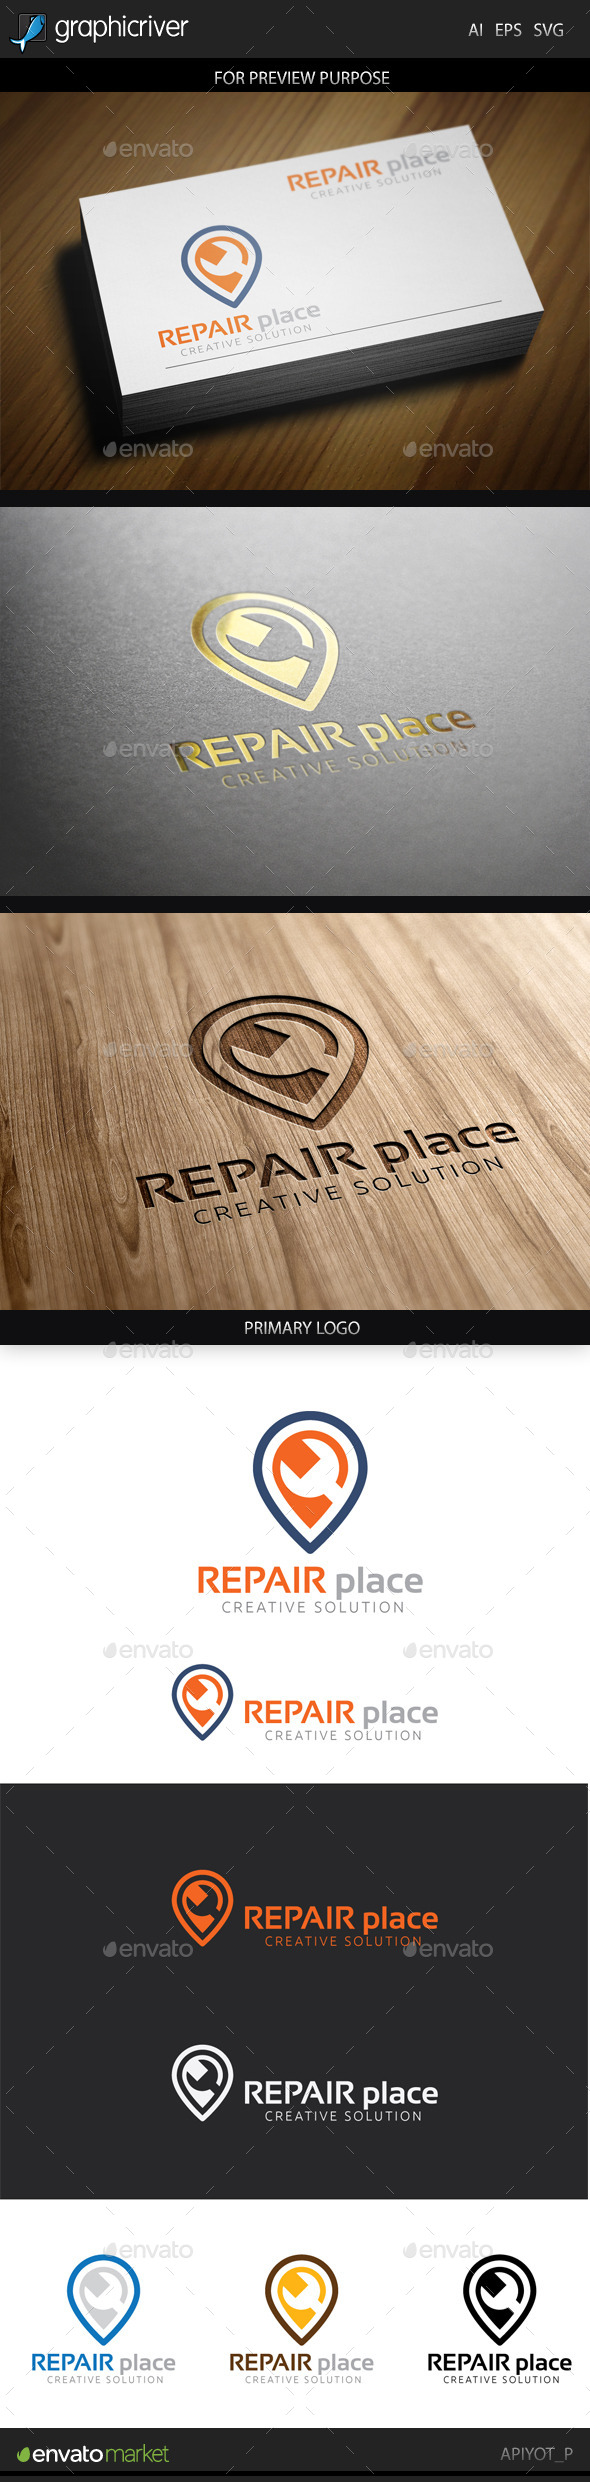 GraphicRiver Repair Place Logo 9060527